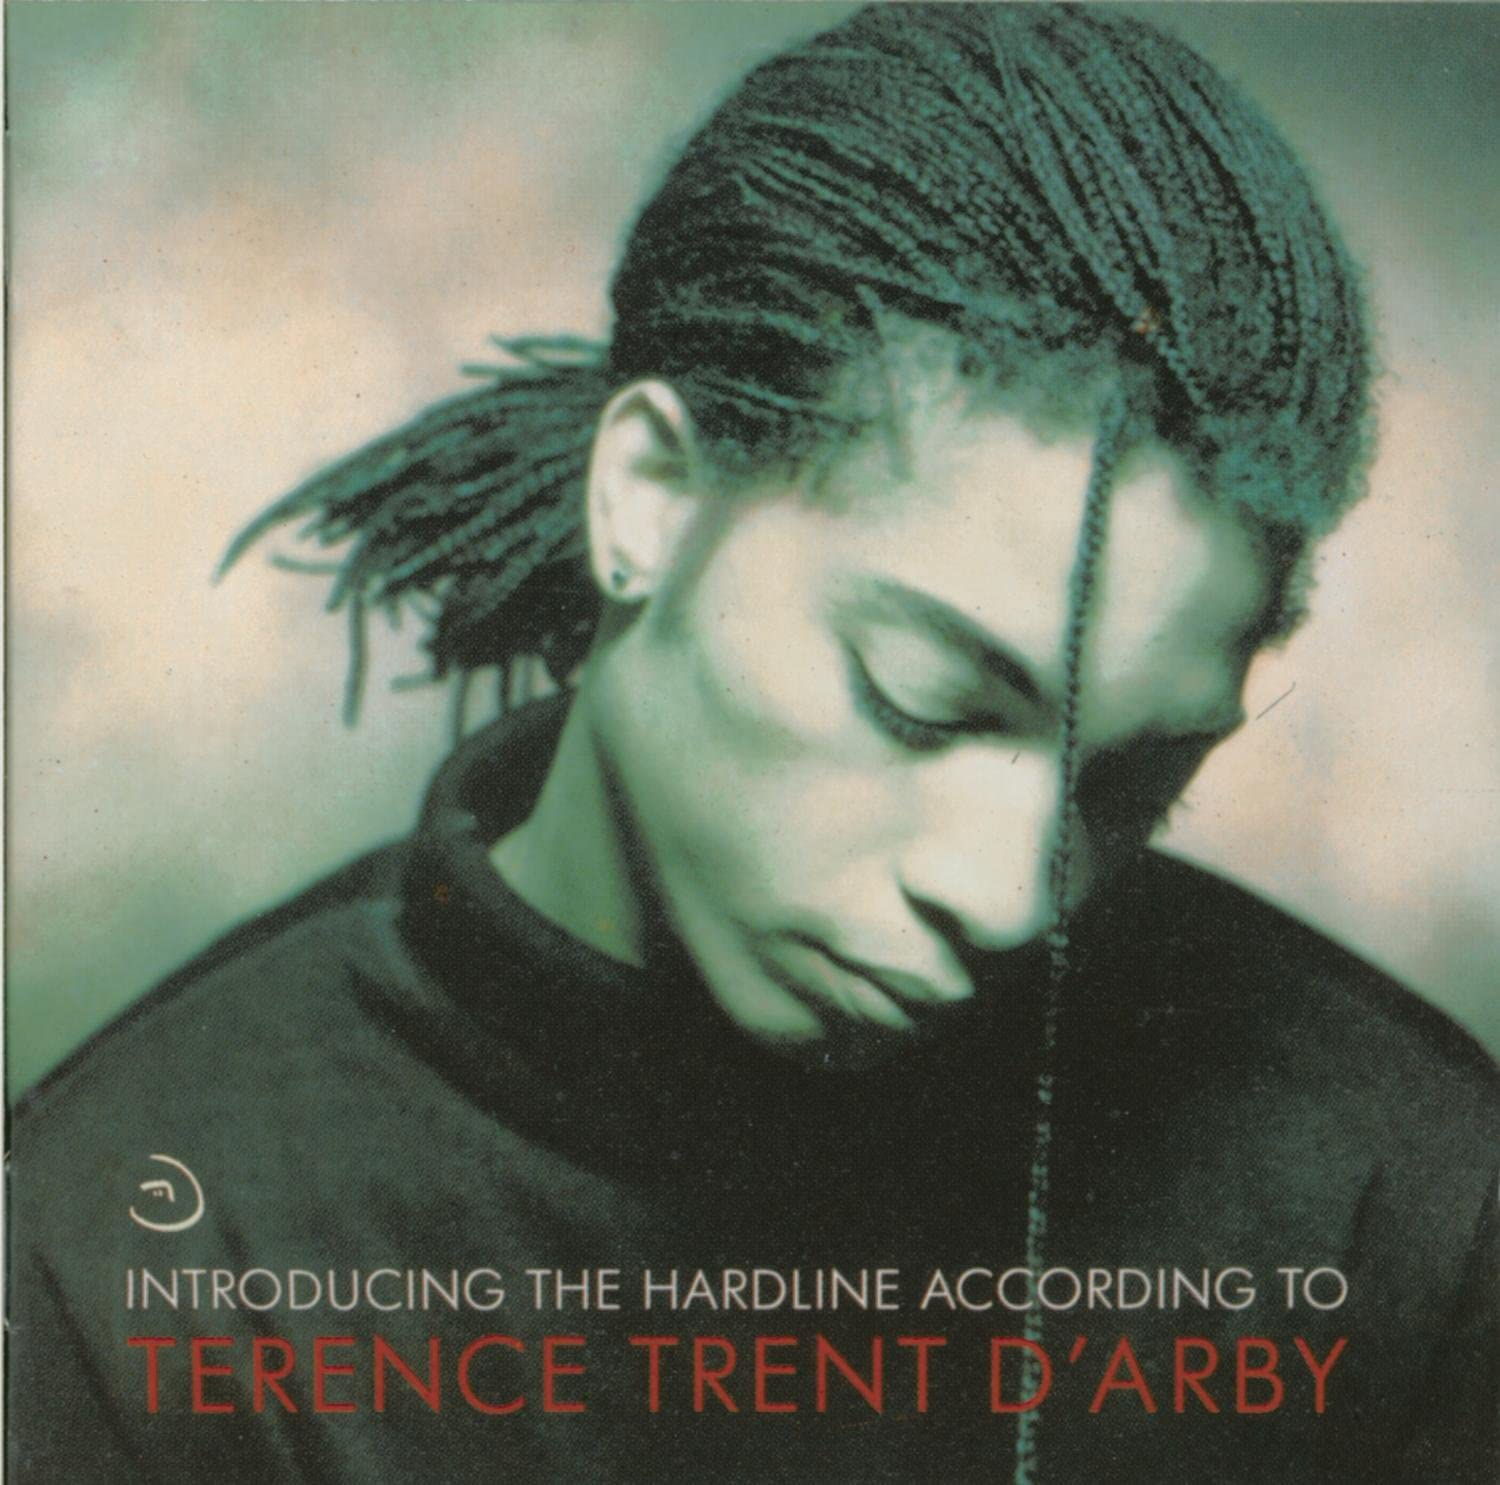 Introducing The Hardline D Arby Terence Trend Amazon It Musica